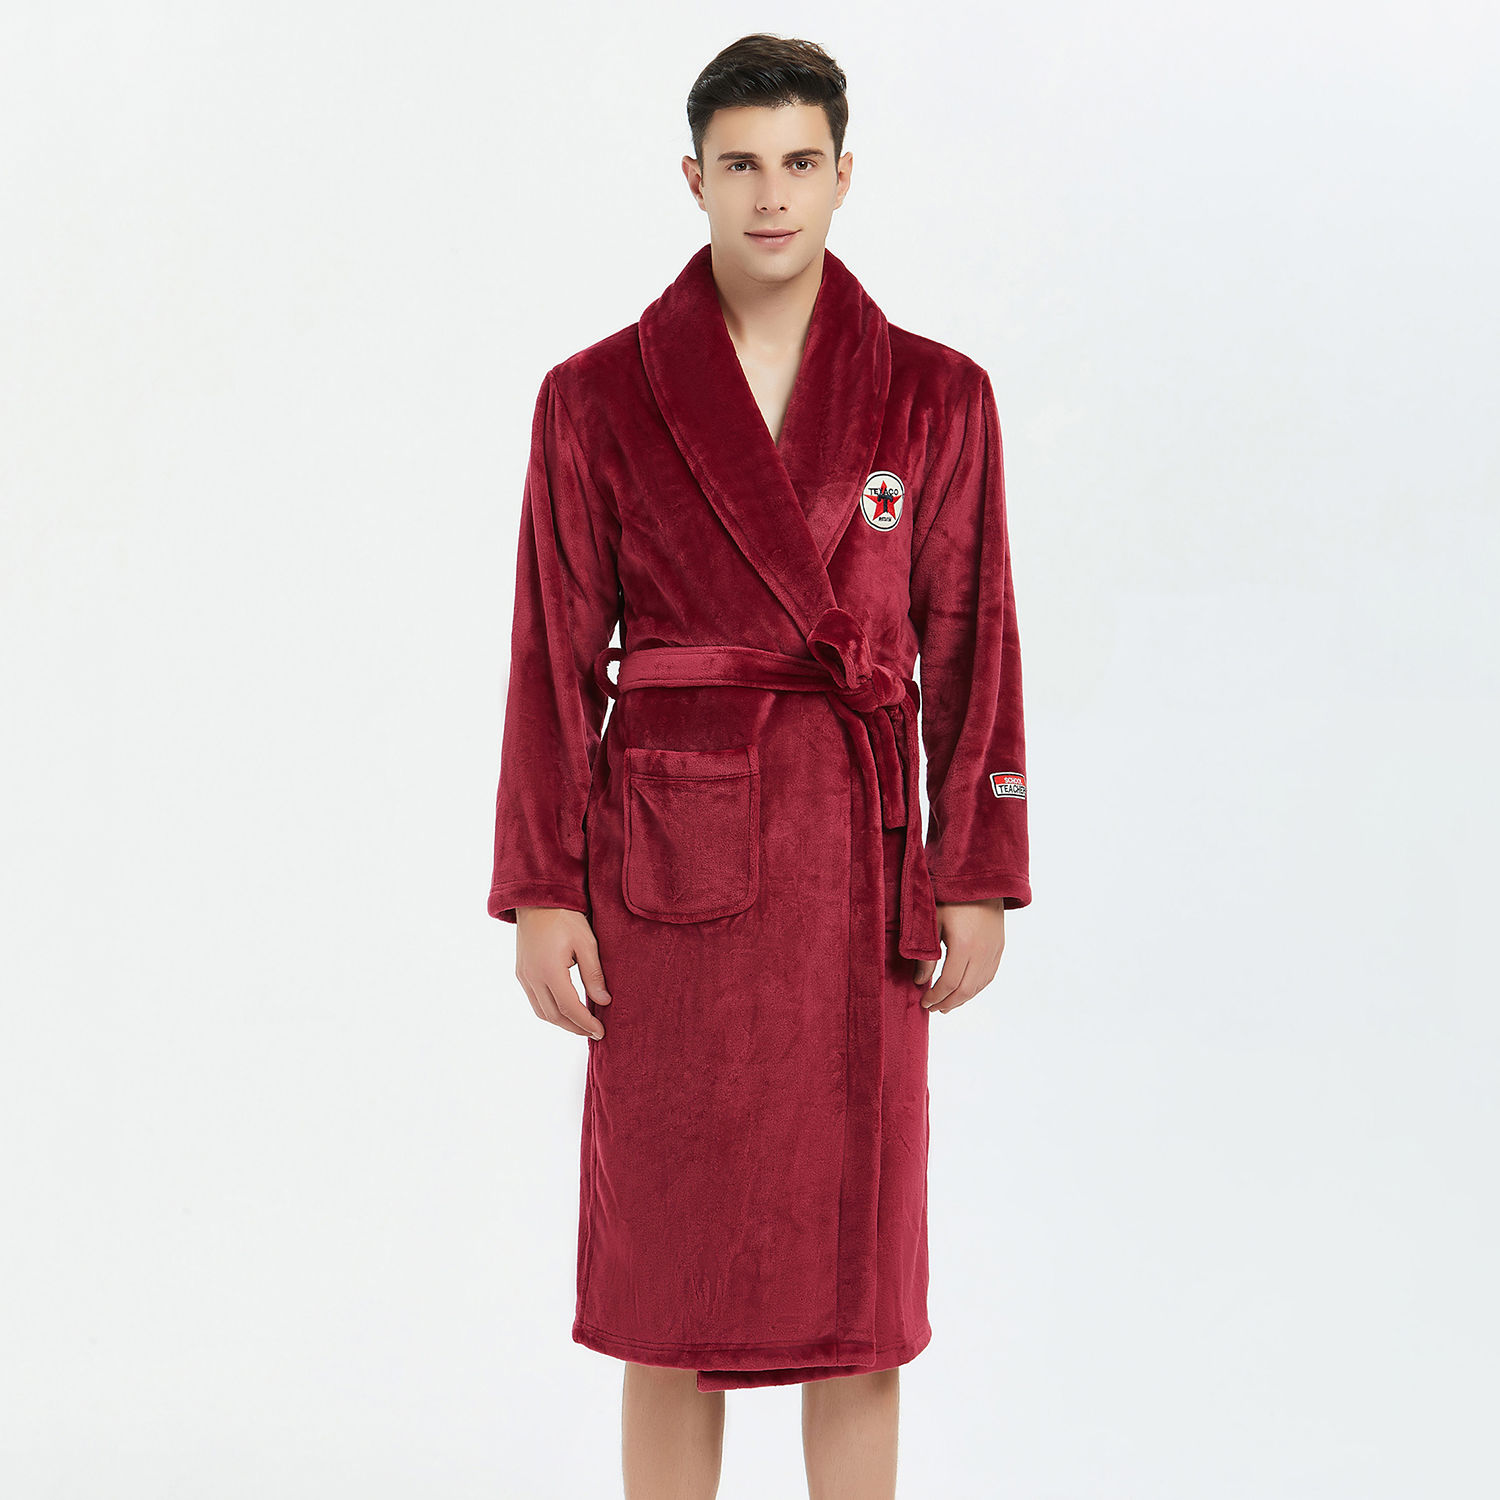 Keep Warm Flannel Men Robe Kimono Gown Nightwear Elegant Solid Burgundy Sleepwear Casual Bathrobe Gown Nightgown Soft Homewear